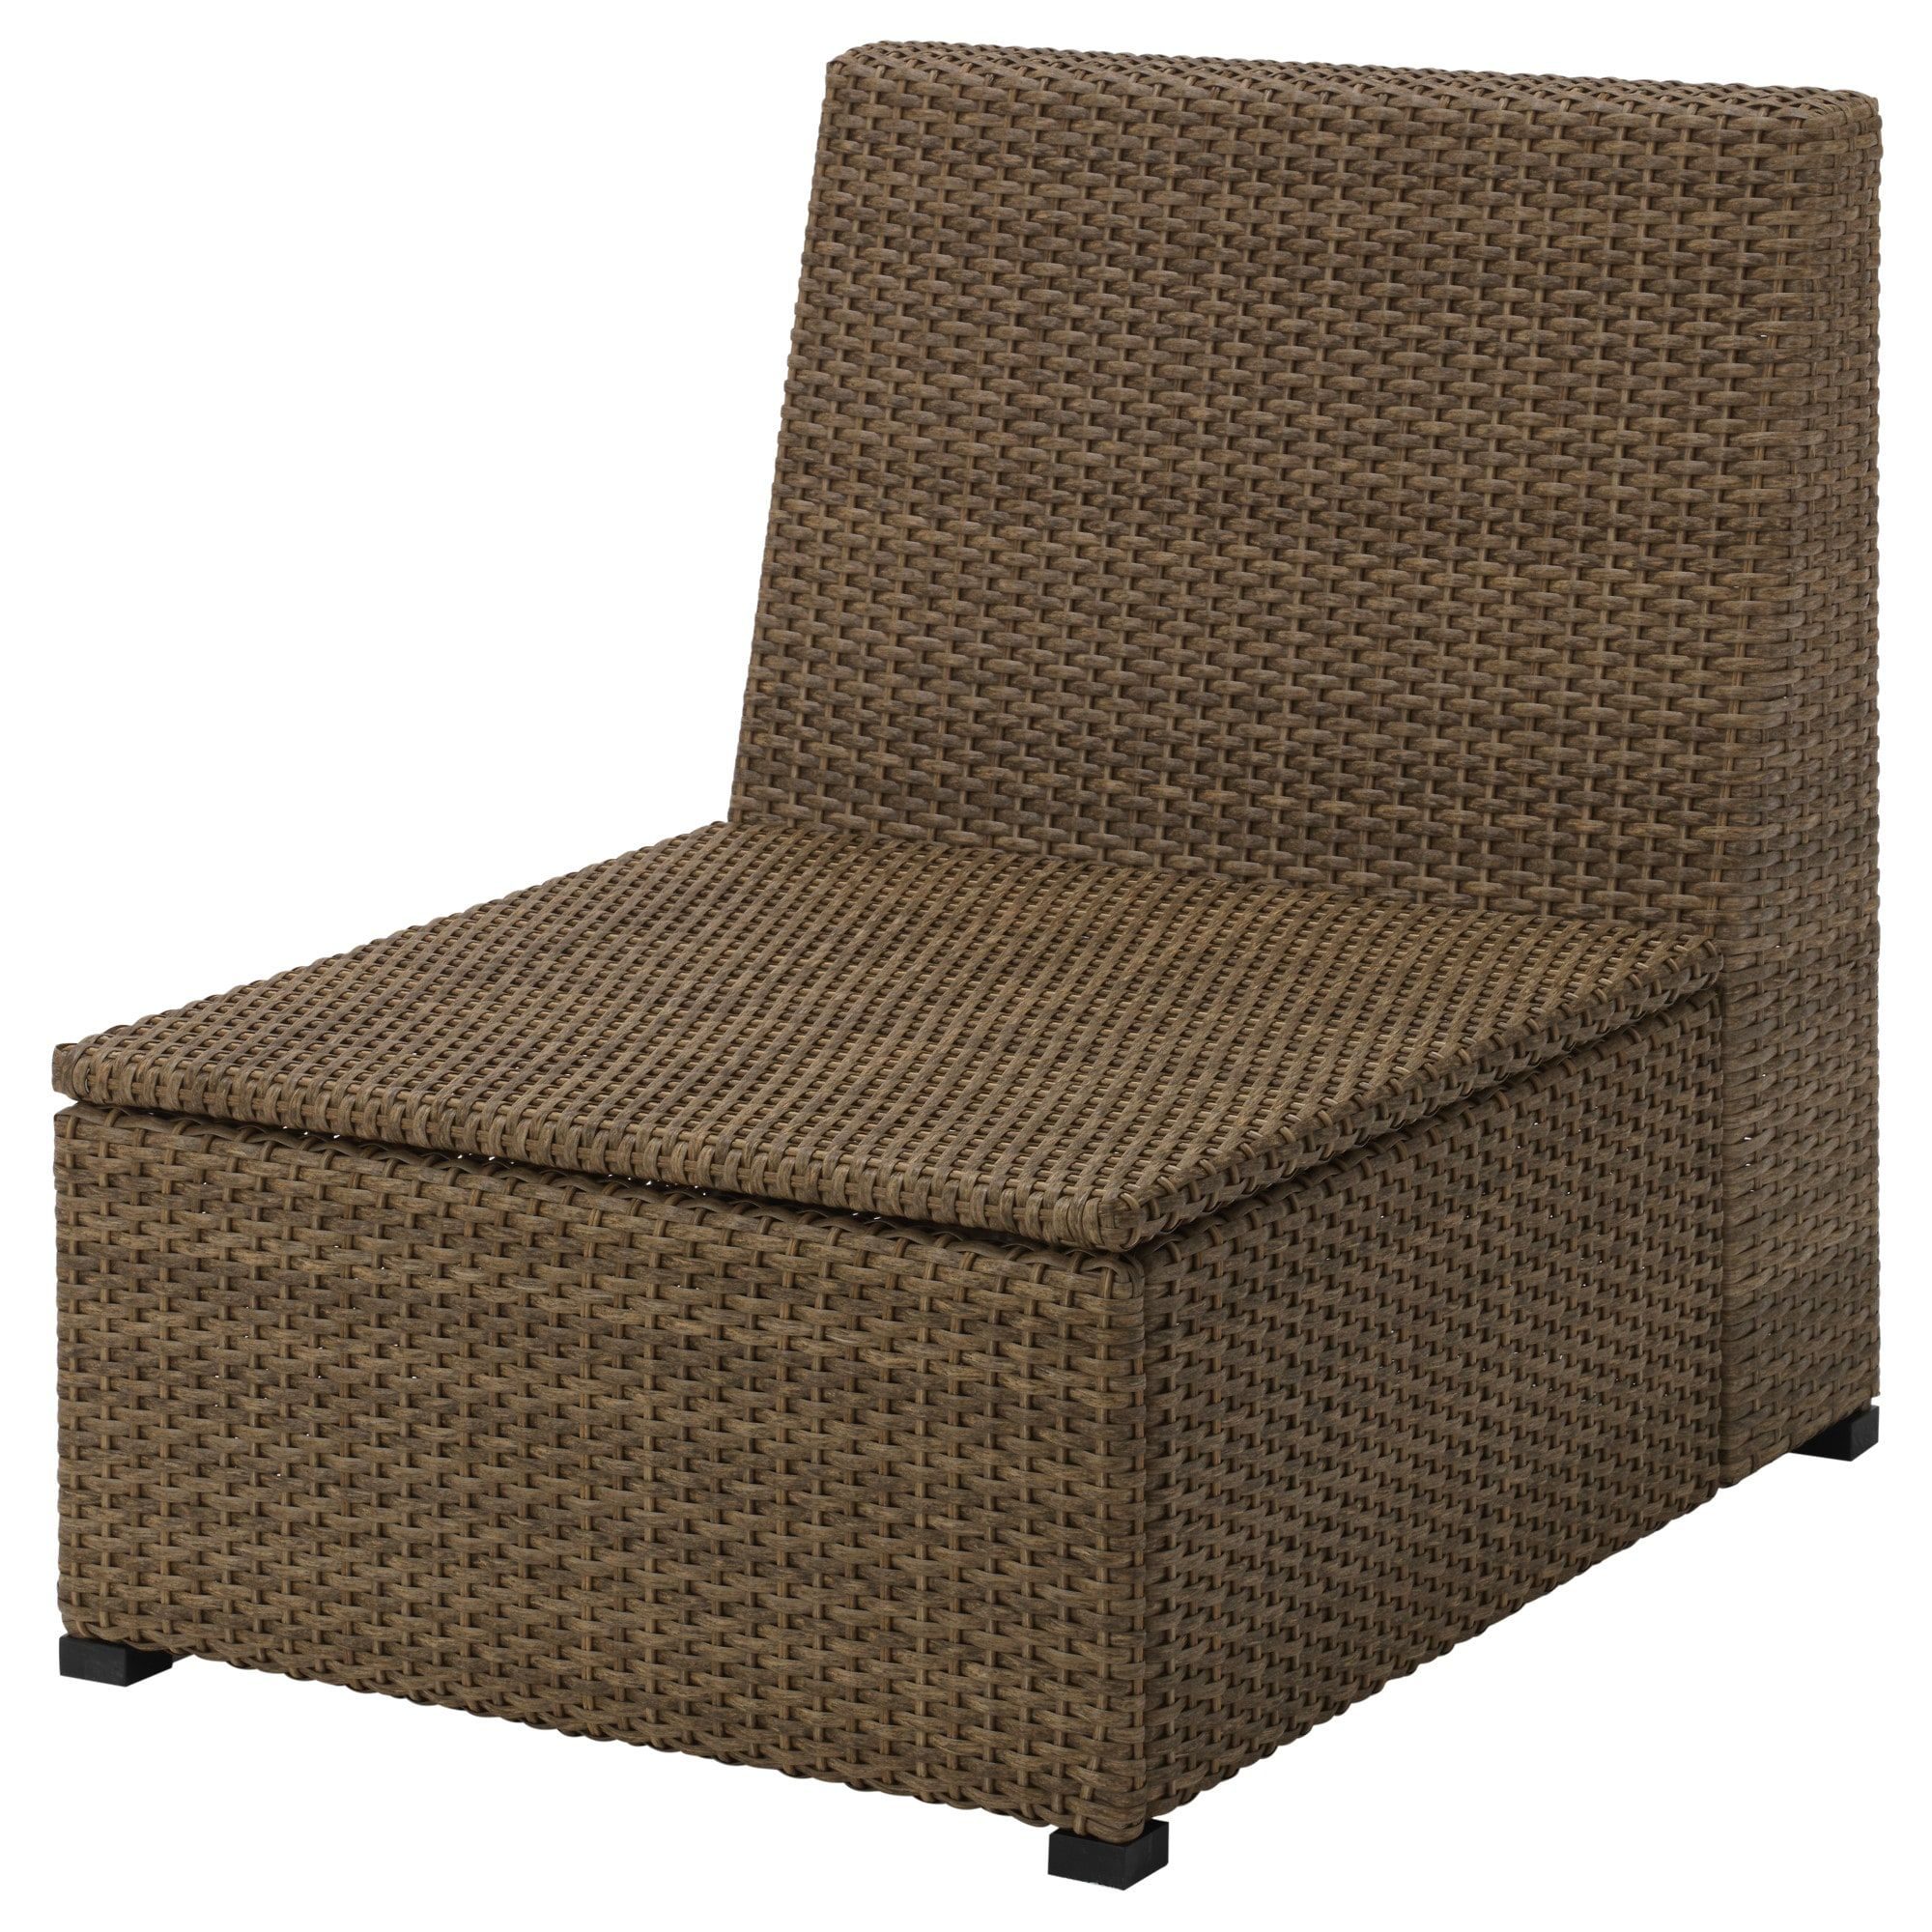 Divano In Rattan Ikea.Ikea Solleron One Seat Section Outdoor Brown Ikea New Home